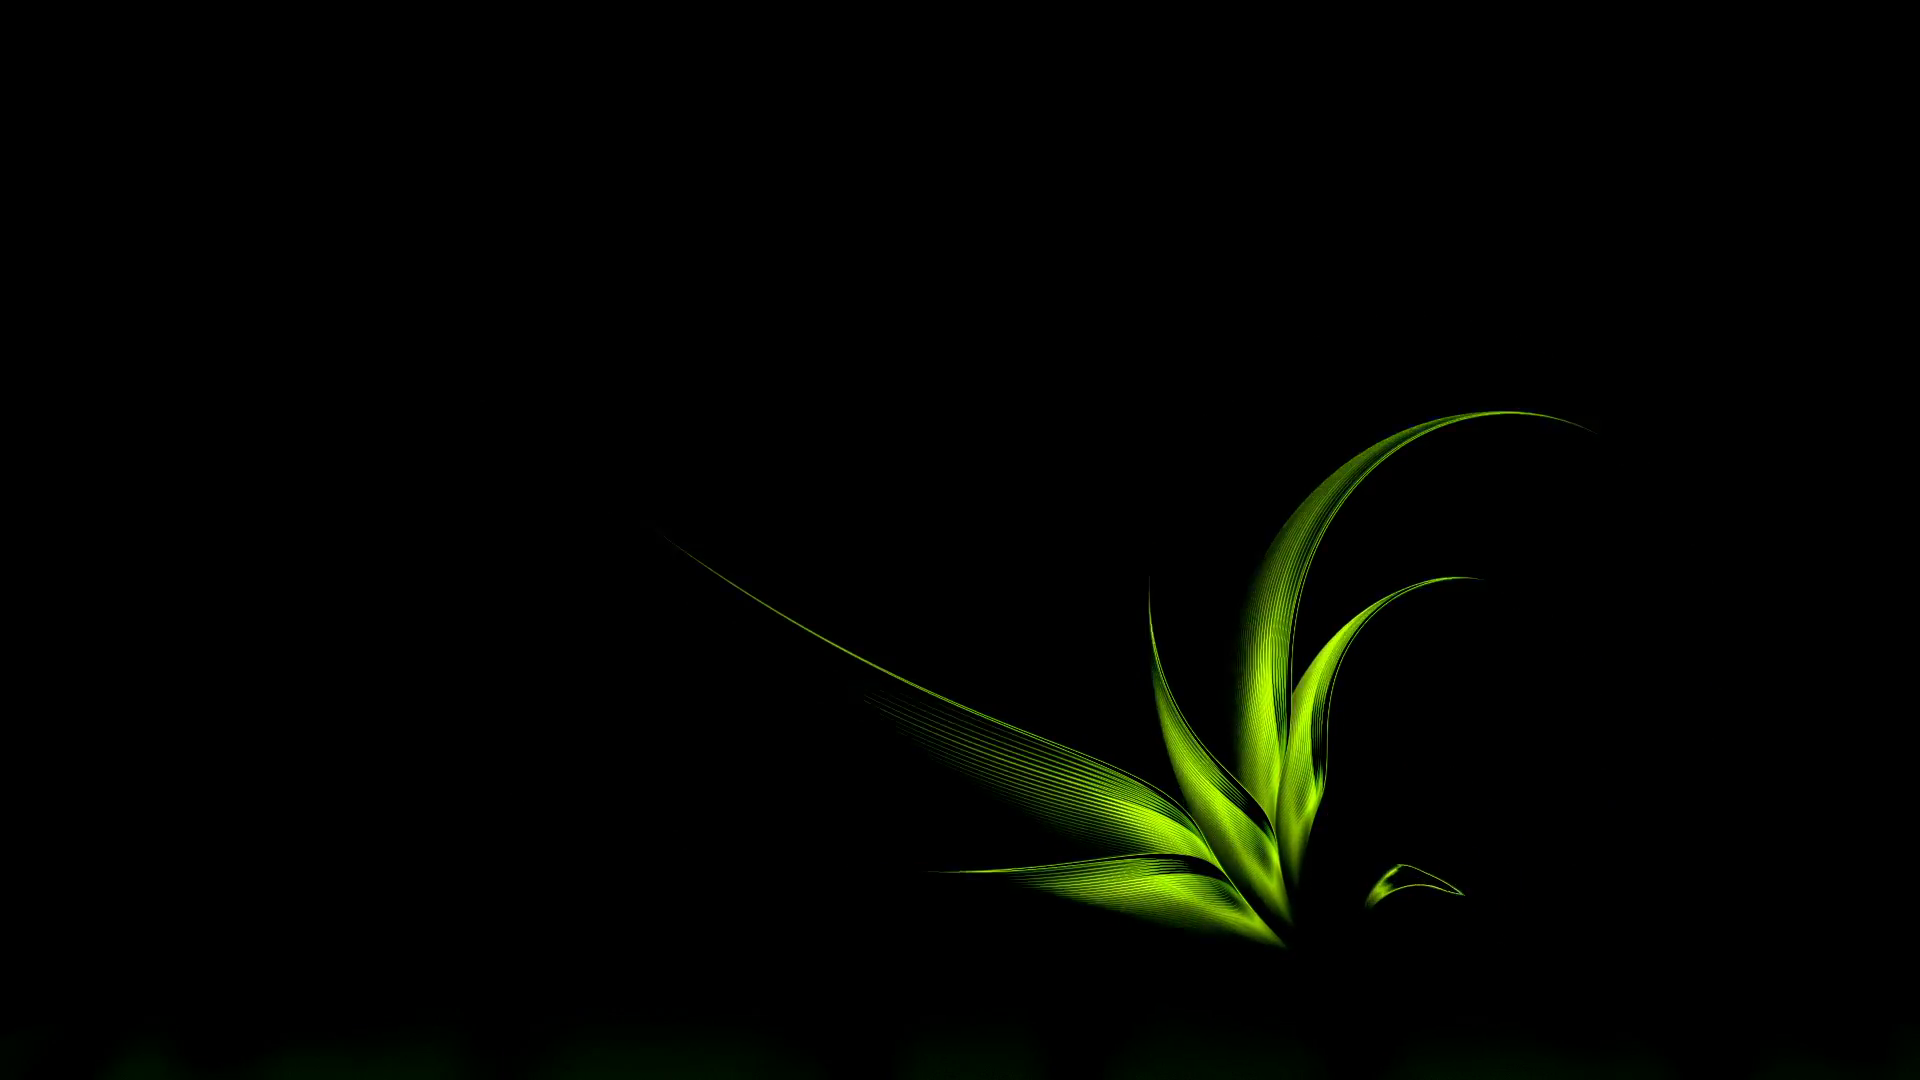 Black And Green High Quality Wallpapers